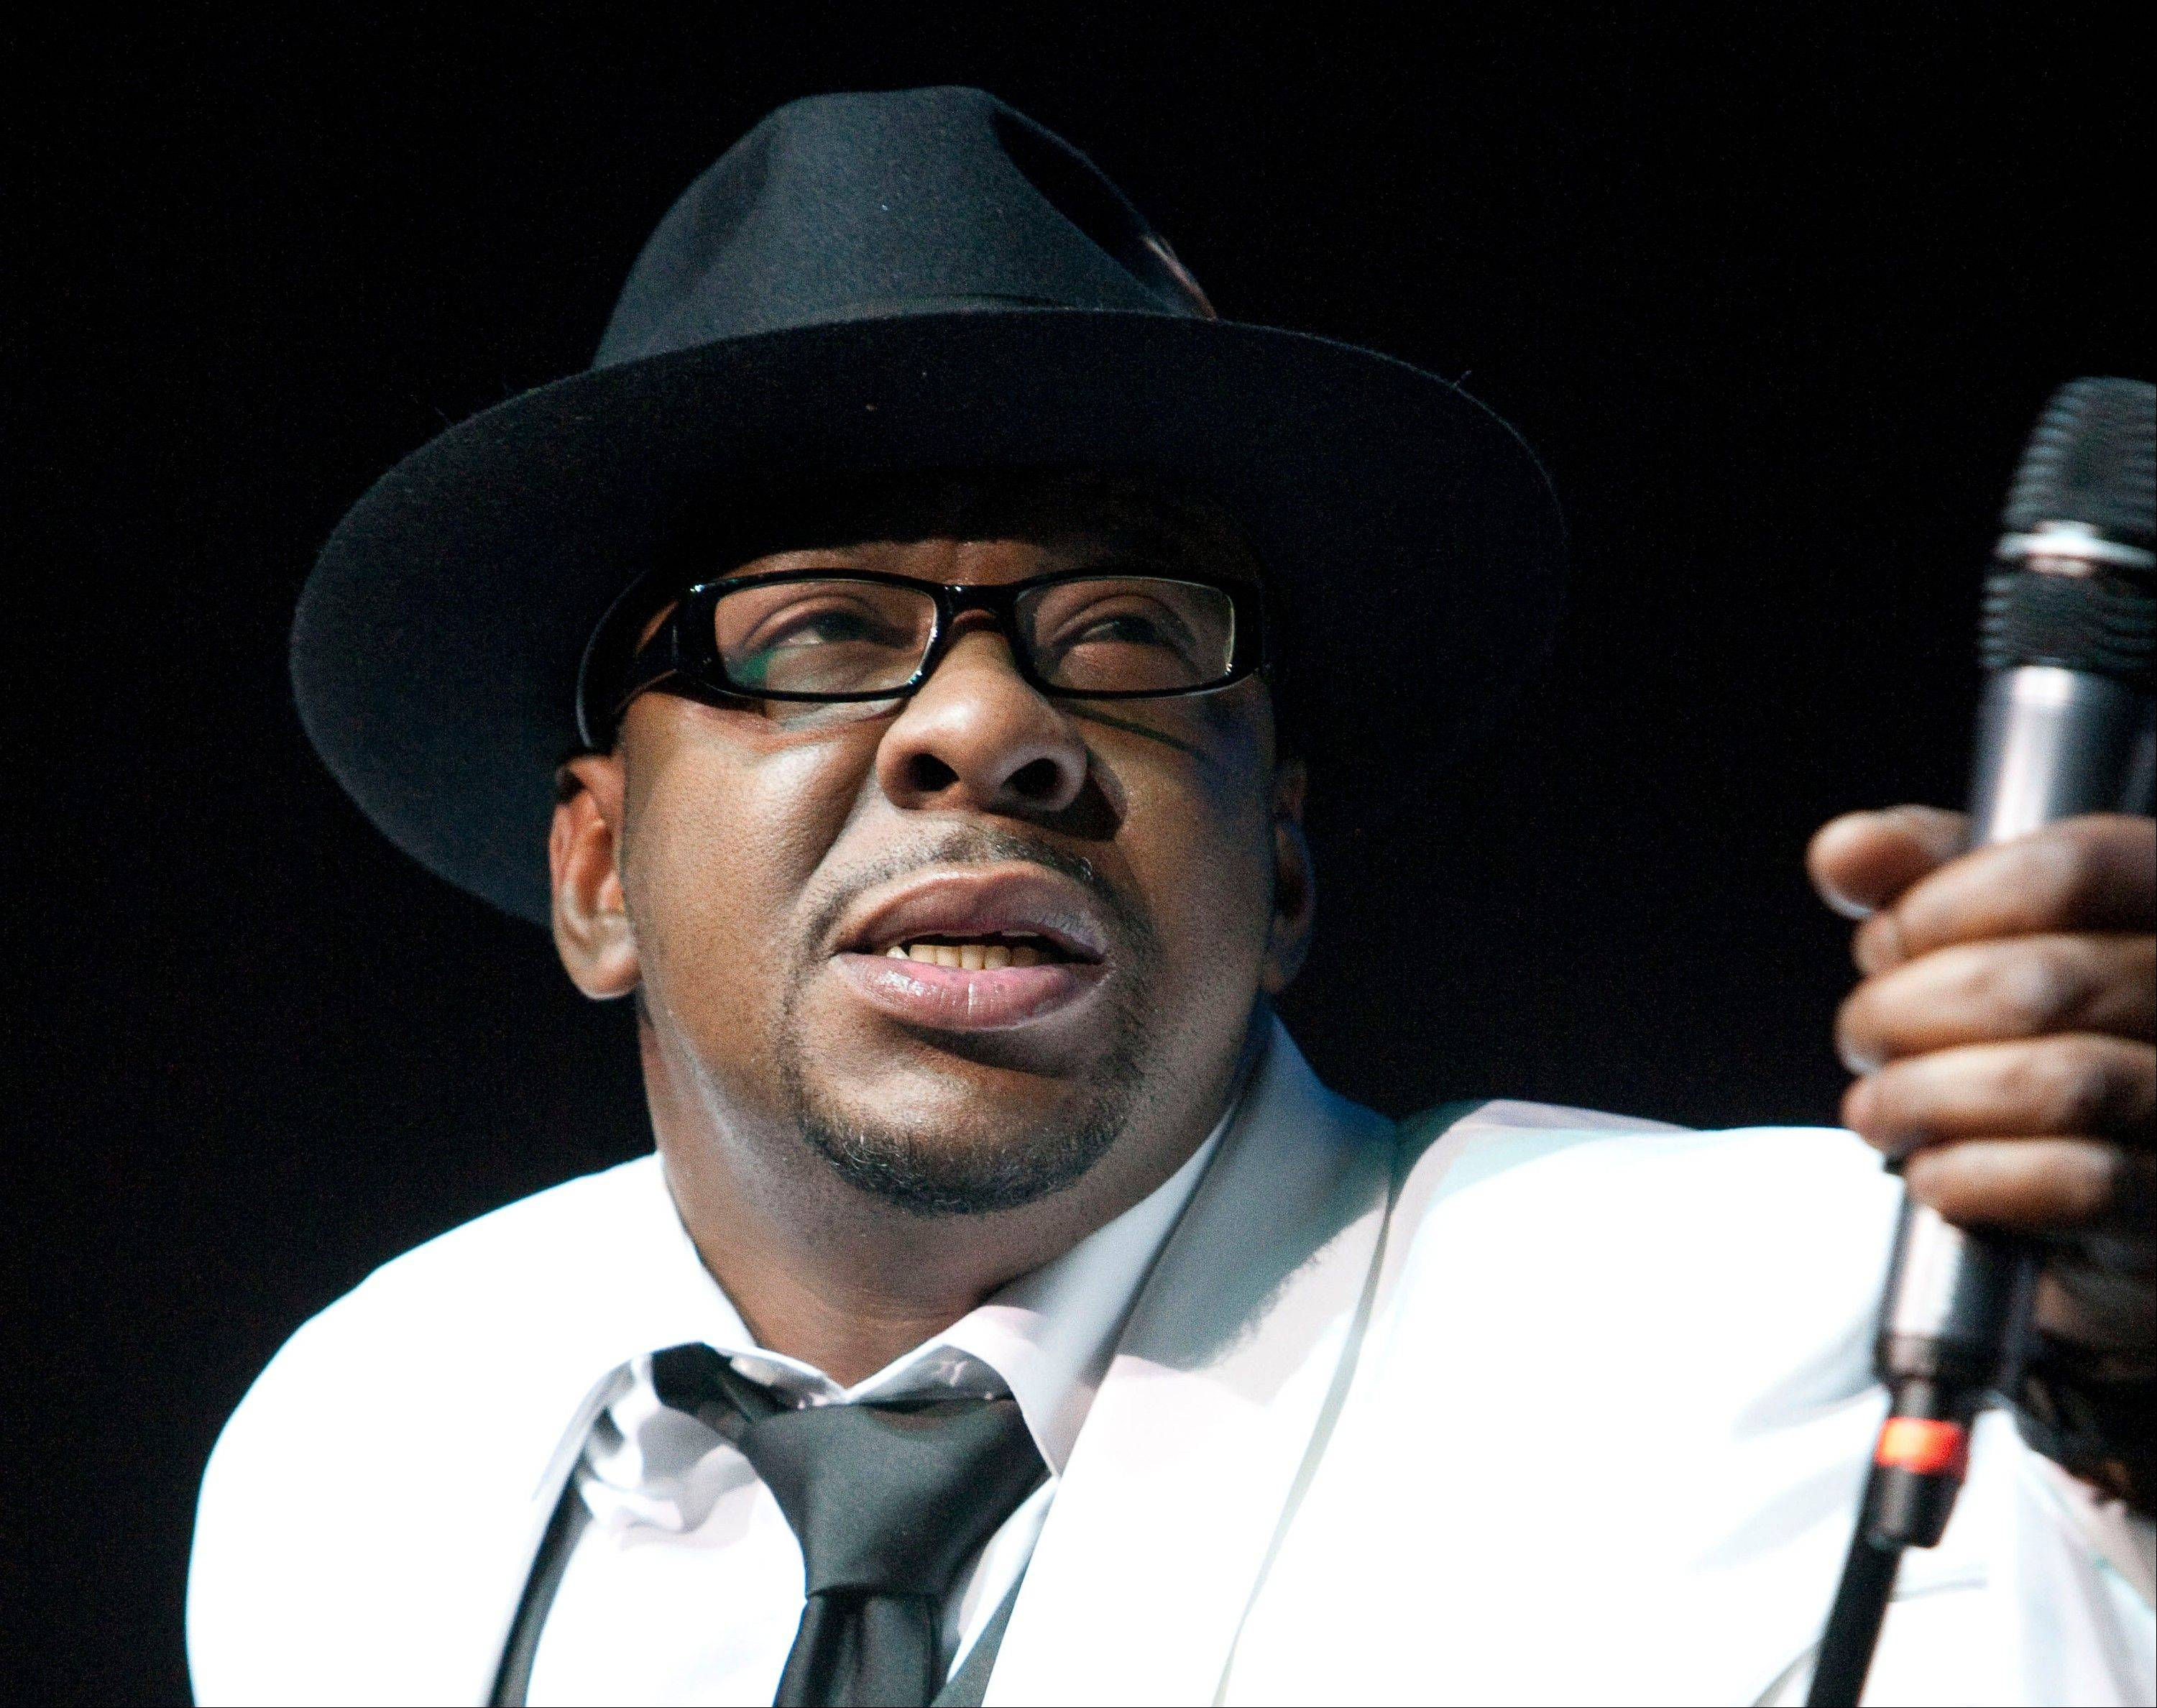 Bobby Brown has been arrested on suspicion of drunken driving for the second time this year. Police say he was booked Wednesday in Los Angeles.